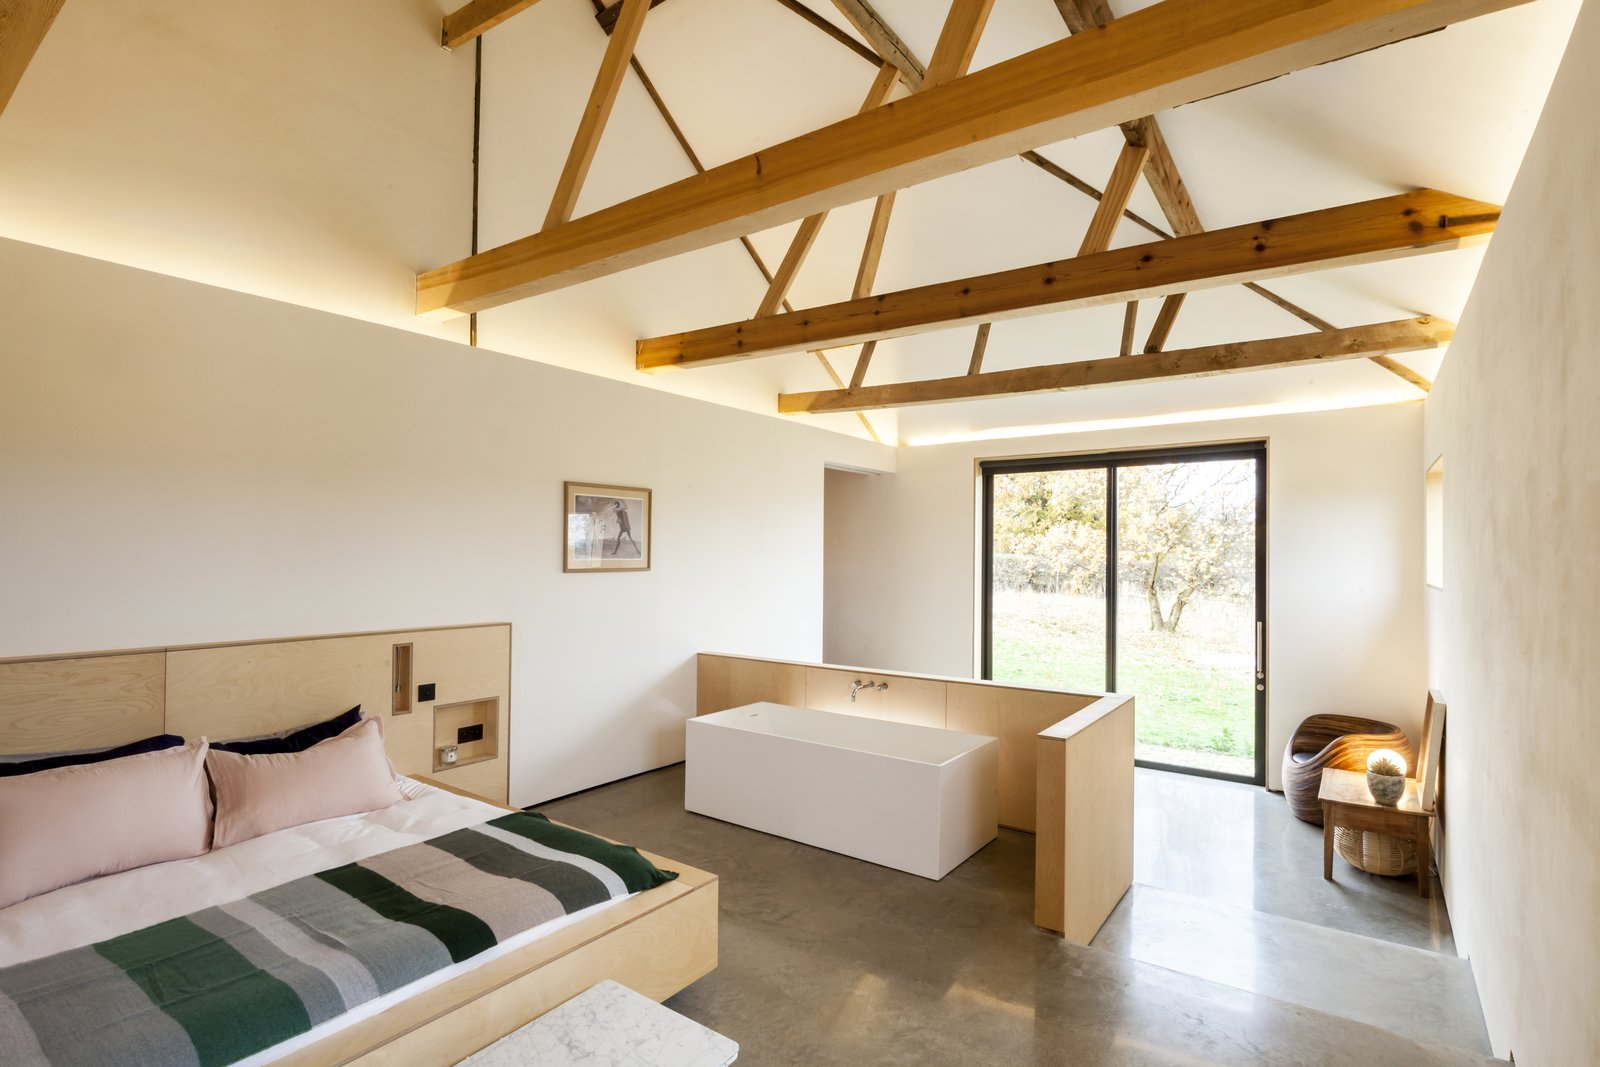 In a life-changing move, homeowners Hannah Smith and Jeremy Witt reside in a caravan in the rural landscape of Suffolk, England, to oversee the restoration of a crumbling barn complex. Simple plywood, cut out to allow views of the landscape, creates subdivisions within the home for private bedroom and bathroom spaces. Rather than formal rooms, they have the effect of large-scale furniture. The master bedroom features an ensuite tub.